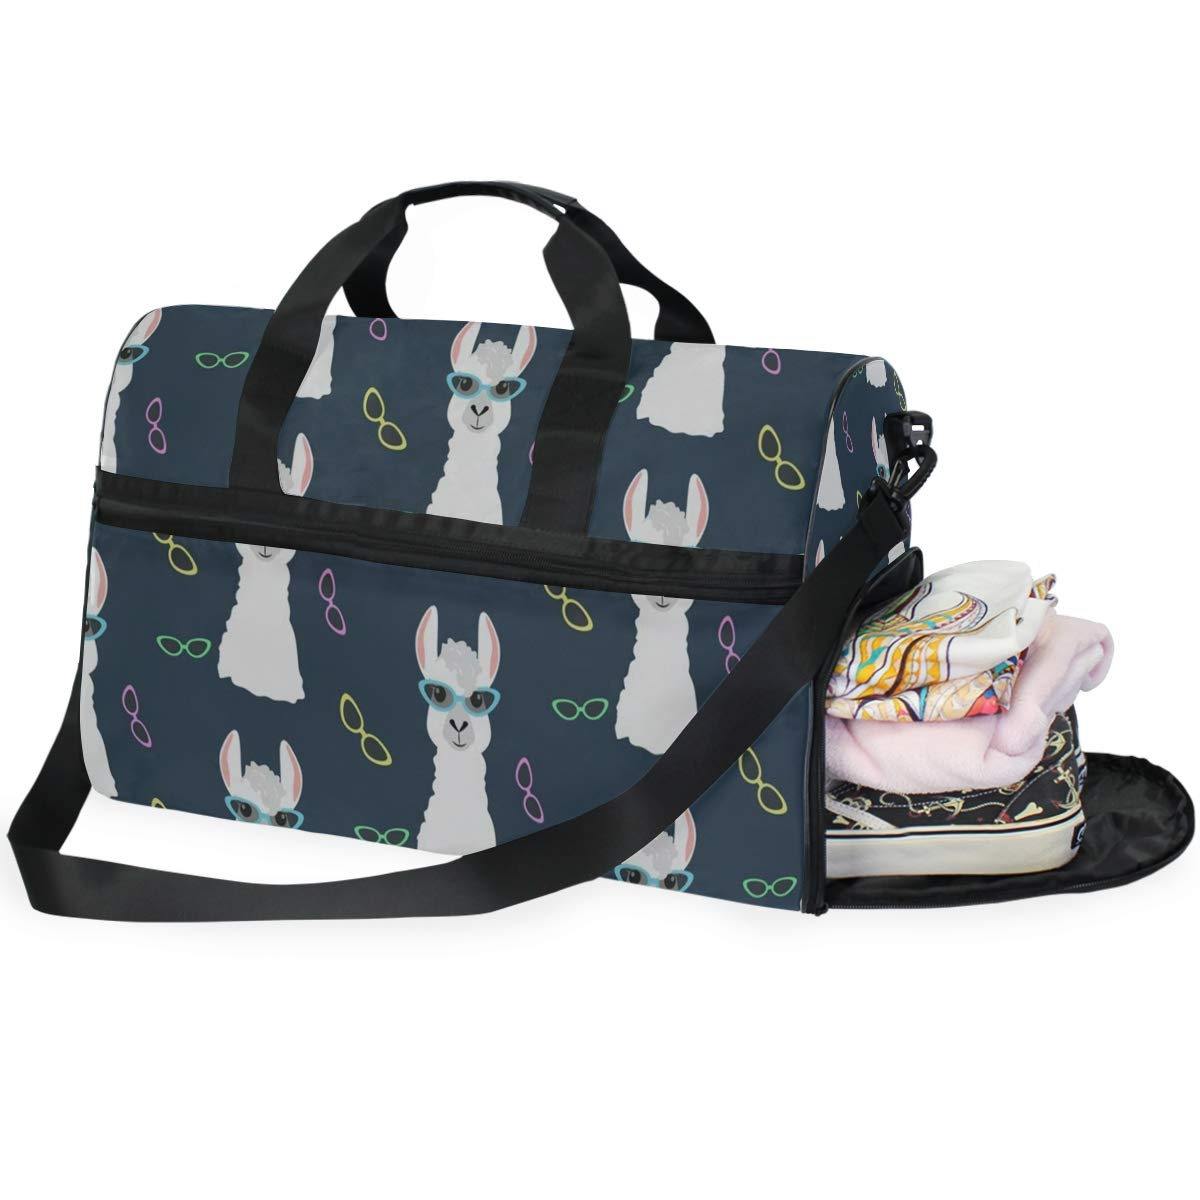 Travel Tote Luggage Weekender Duffle Bag Alpaca Wearing Glasses Large Canvas shoulder bag with Shoe Compartment